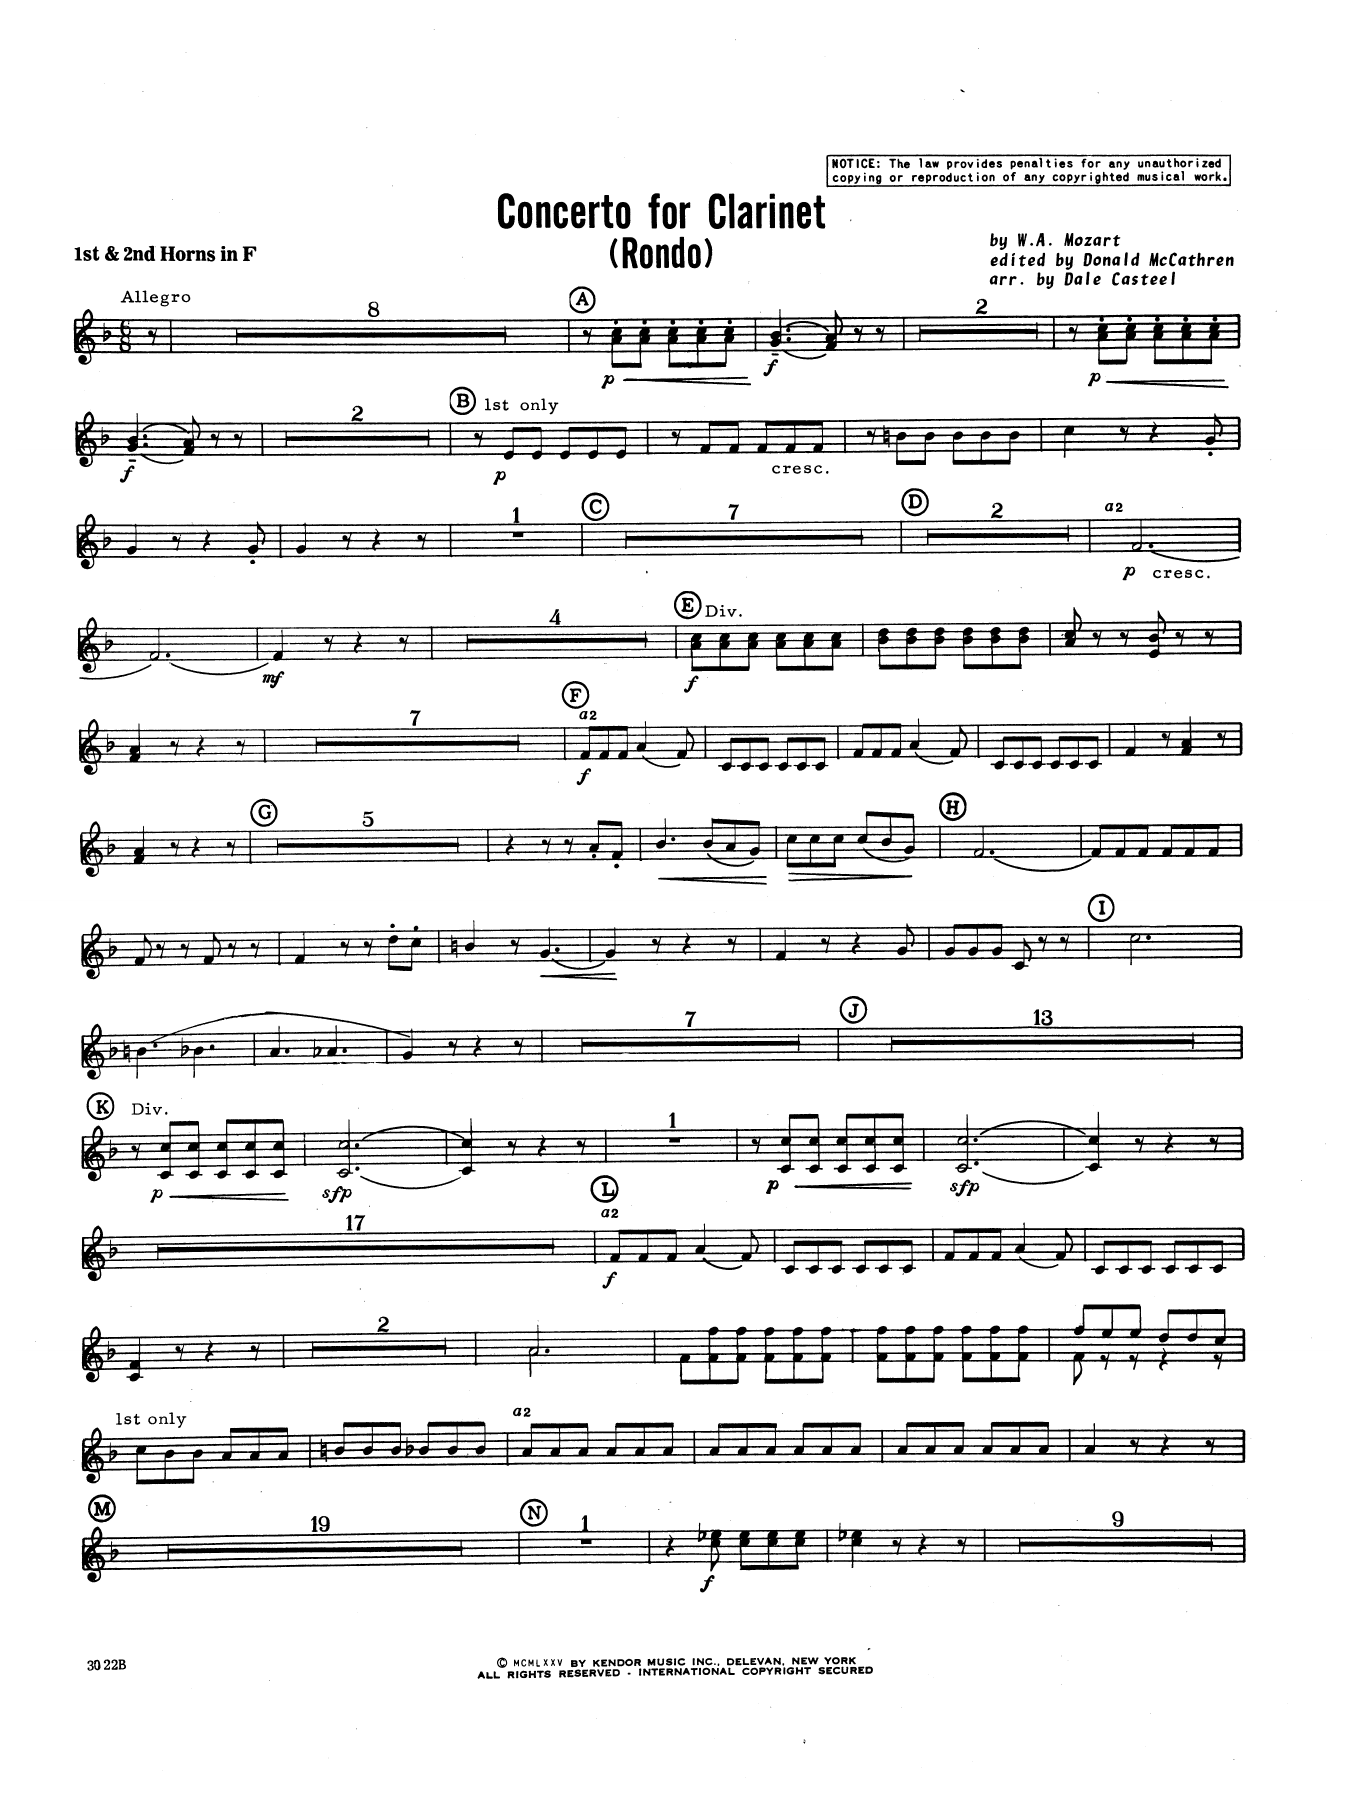 Donald McCathren and Dale Casteel Concerto For Clarinet - Rondo (3rd Movement) - K.622 - Horn 1 & 2 sheet music notes printable PDF score